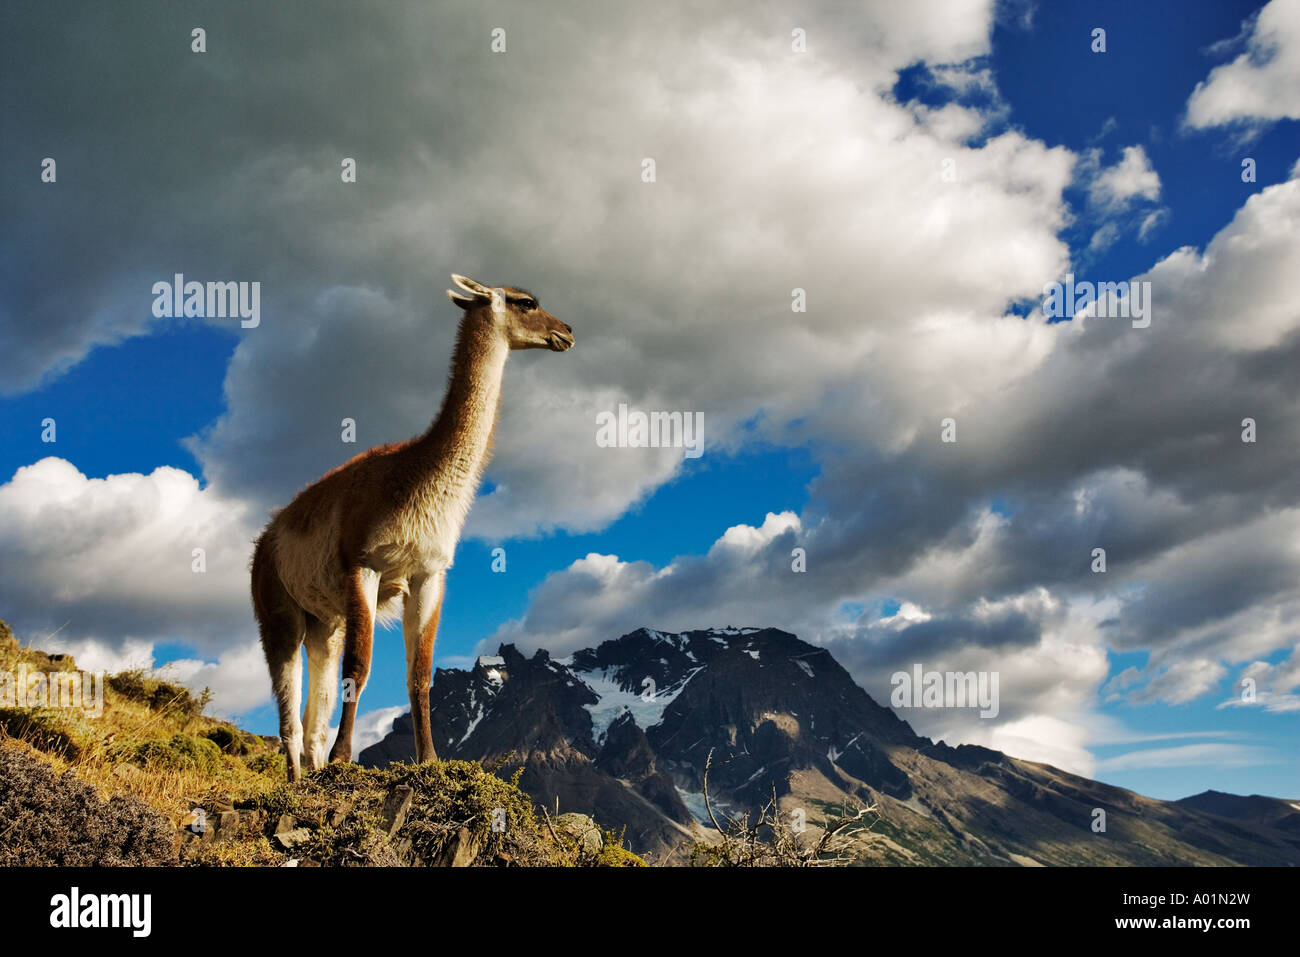 Guanaco Lama guanicoe Cobourg debout sur colline Parc National Torres del Paine Chili Amérique du Sud Photo Stock